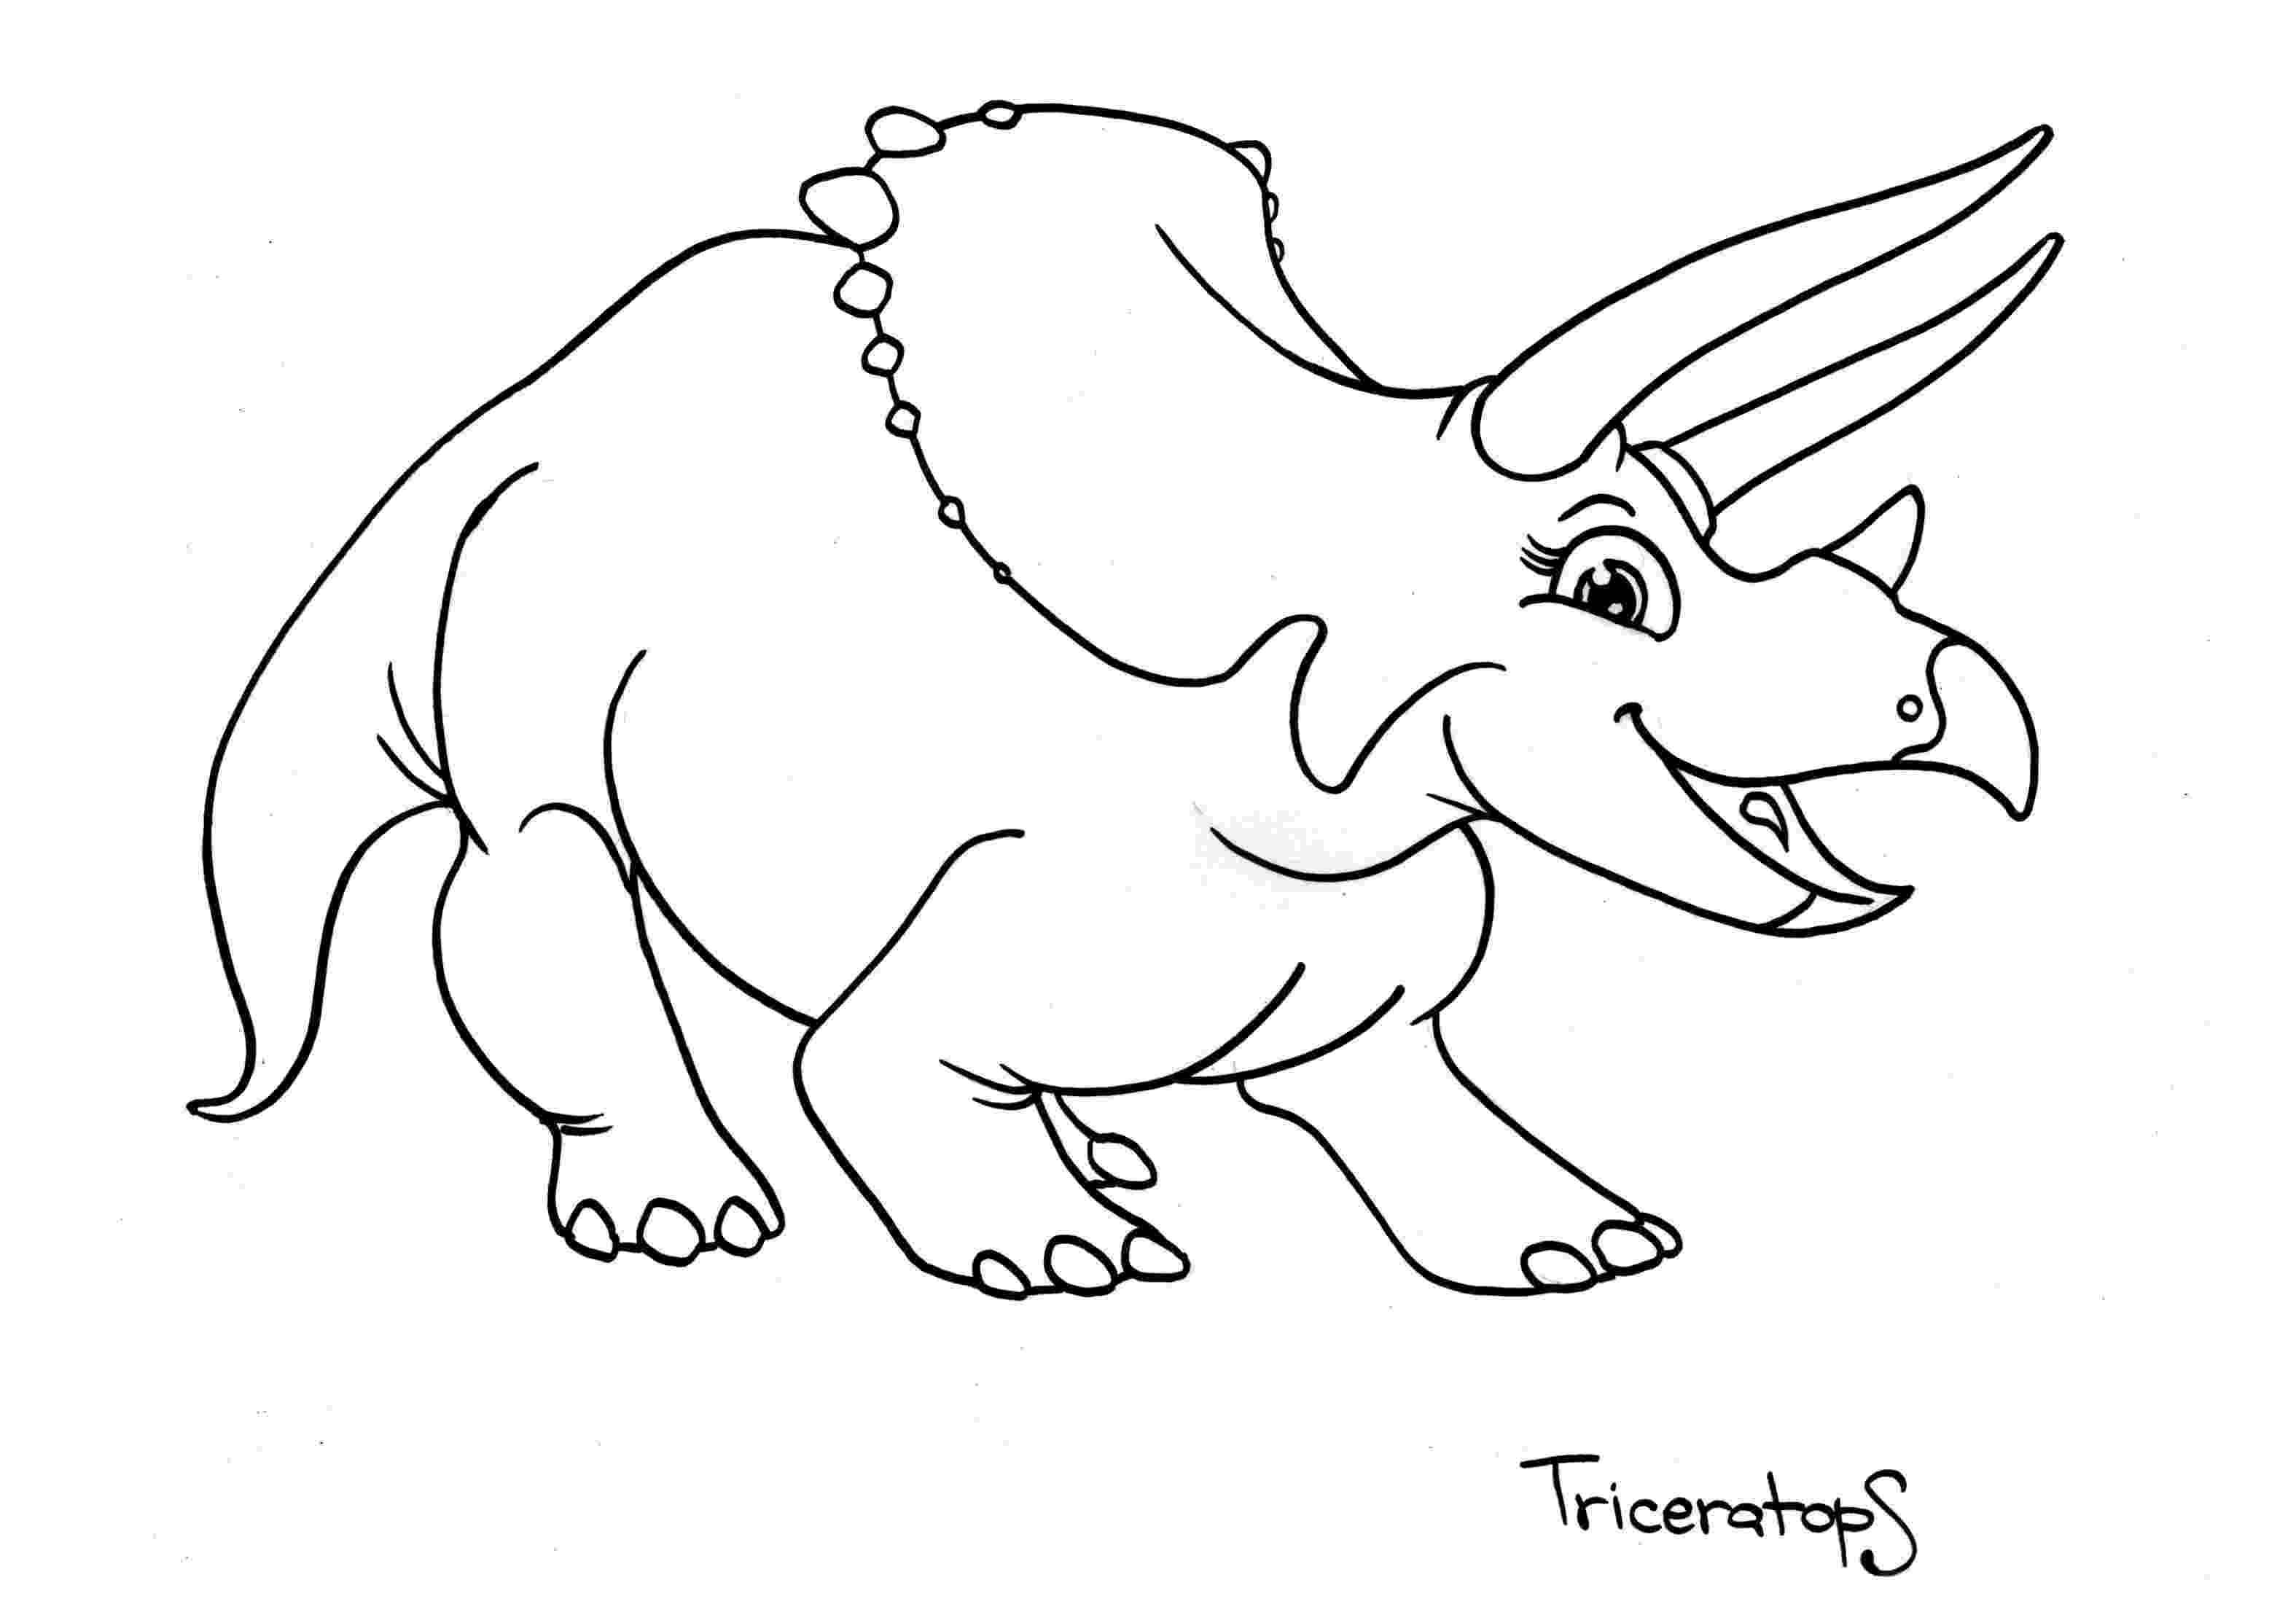 dinosaurs colouring pictures to print kids coloring pages dinosaur coloring pages pictures to dinosaurs print colouring